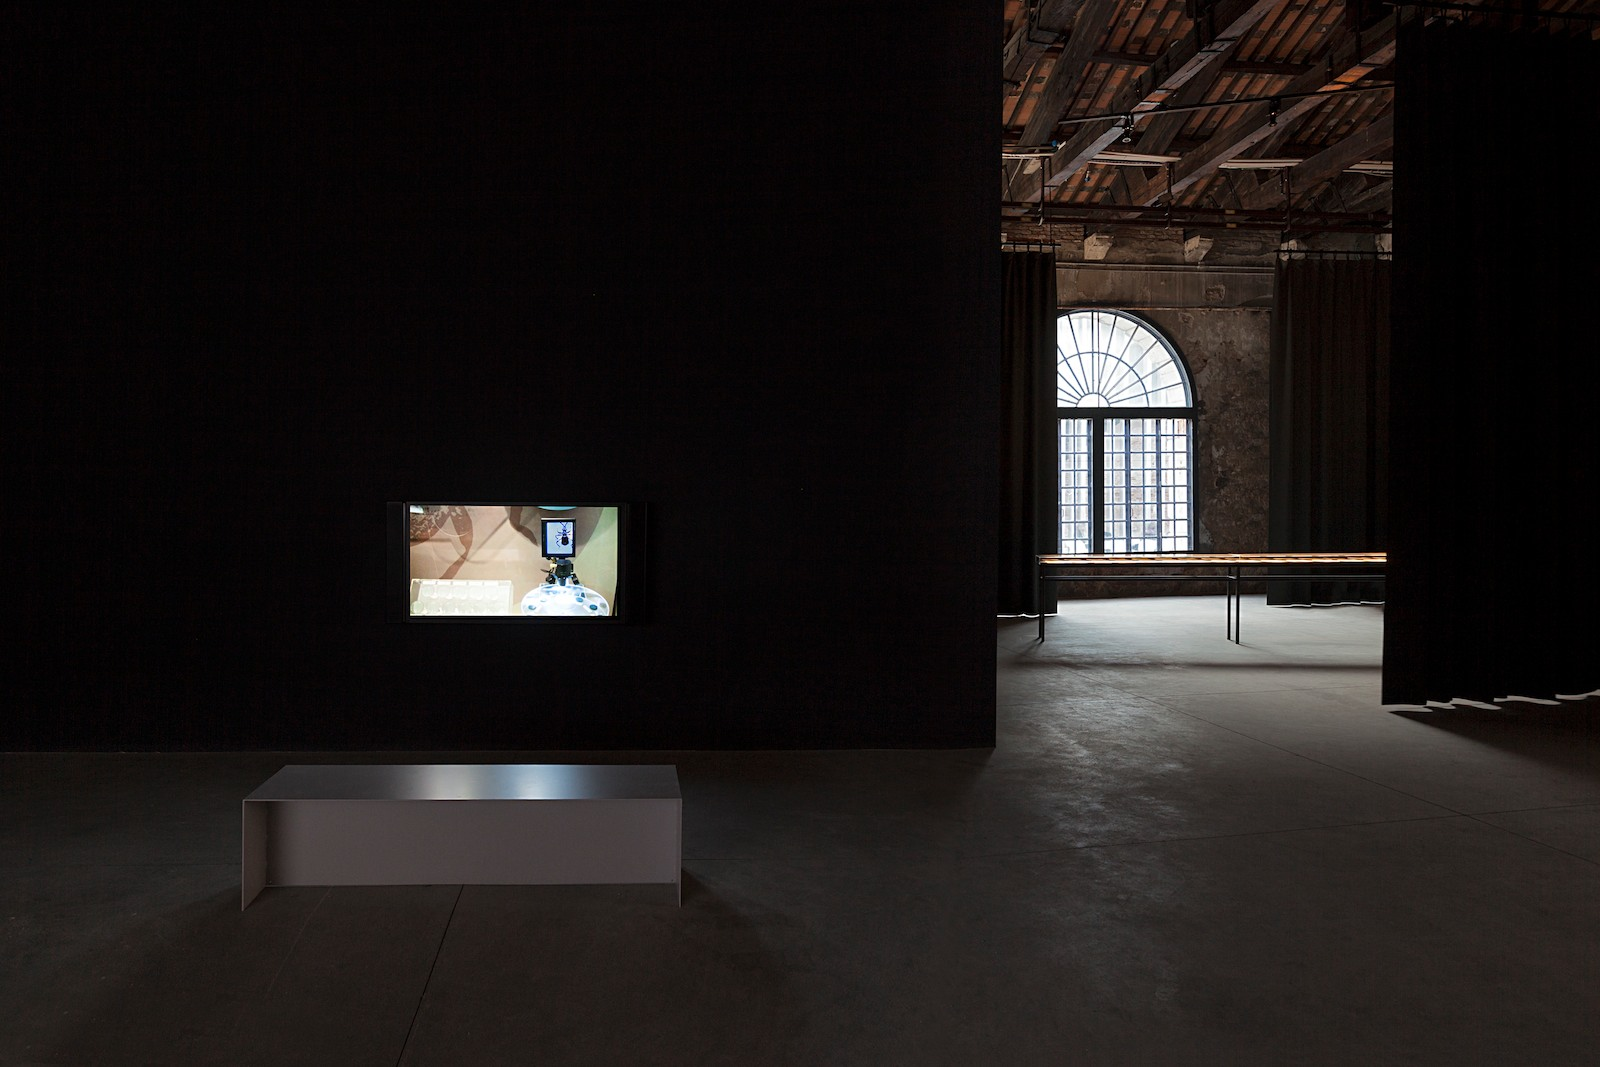 Installation view Excavation of the image - Imprint, shadow, spectre, thoughtSolo exhibition, the Swedish Pavilion at the 56th International Art Exhibition of la Biennale di Venezia: Arsenale, Venice, 2015